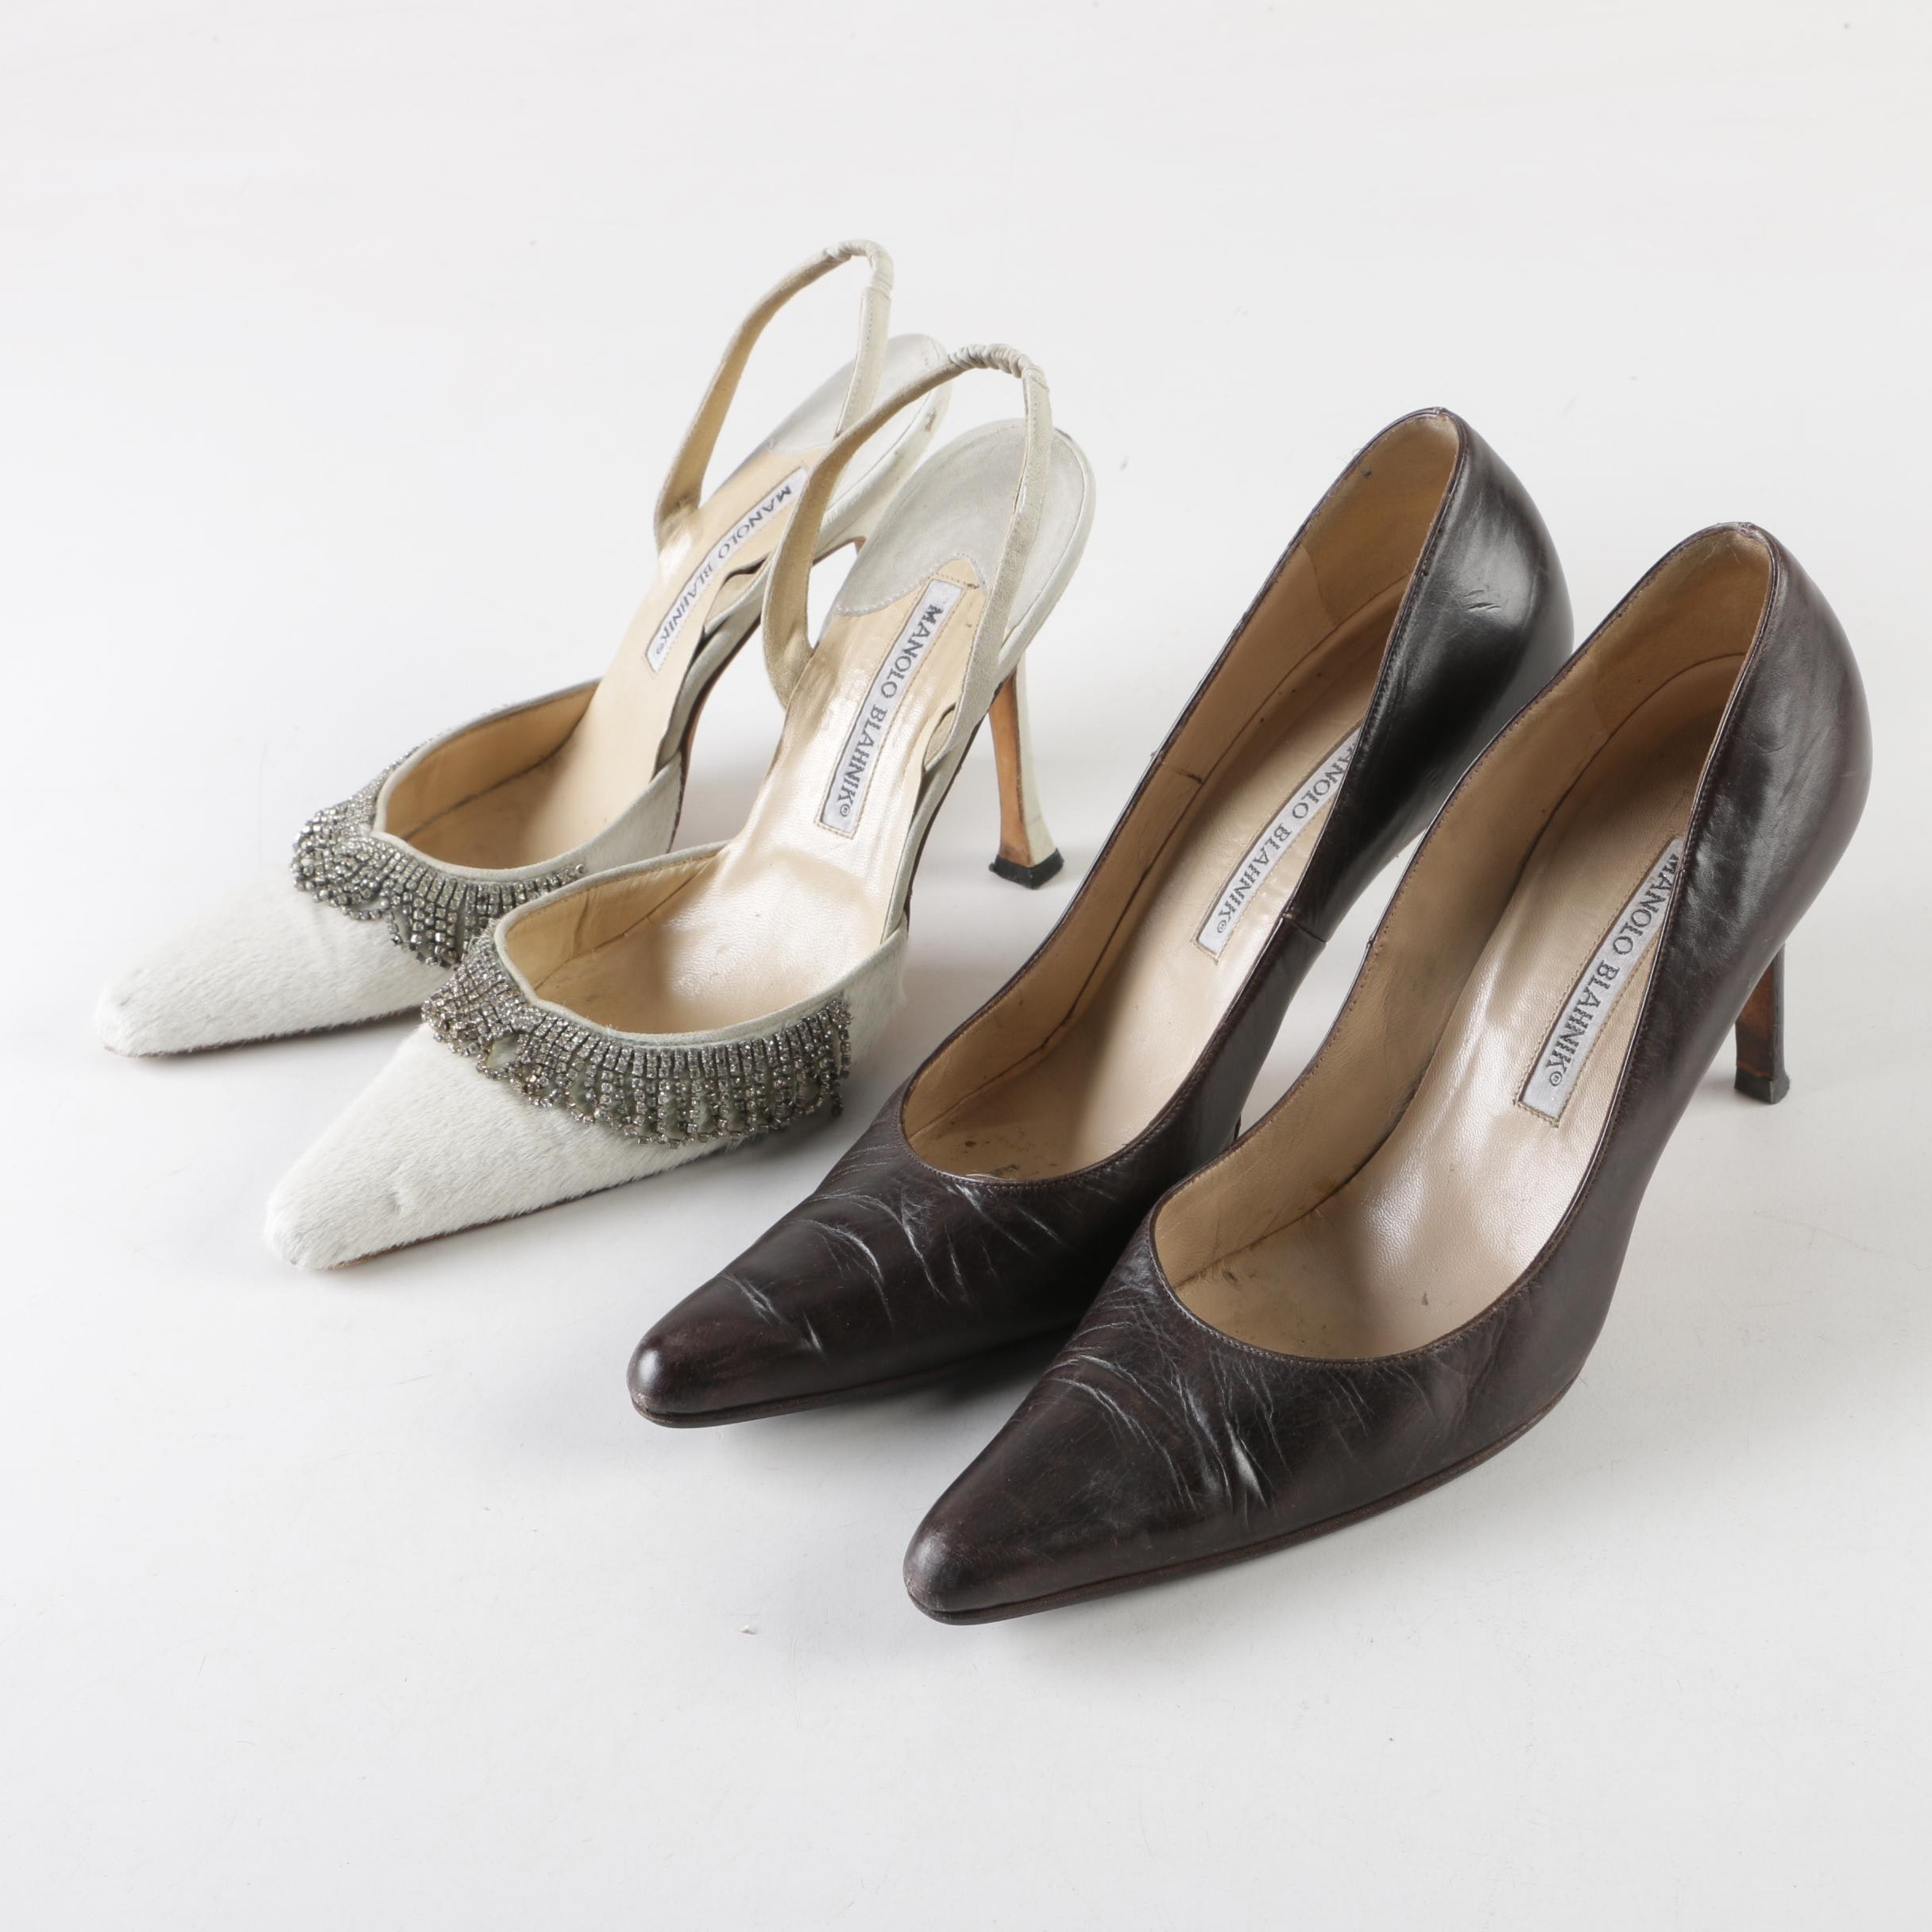 Manolo Blahnik Brown Leather Pumps and Embellished Calf Hair Slingback Heels